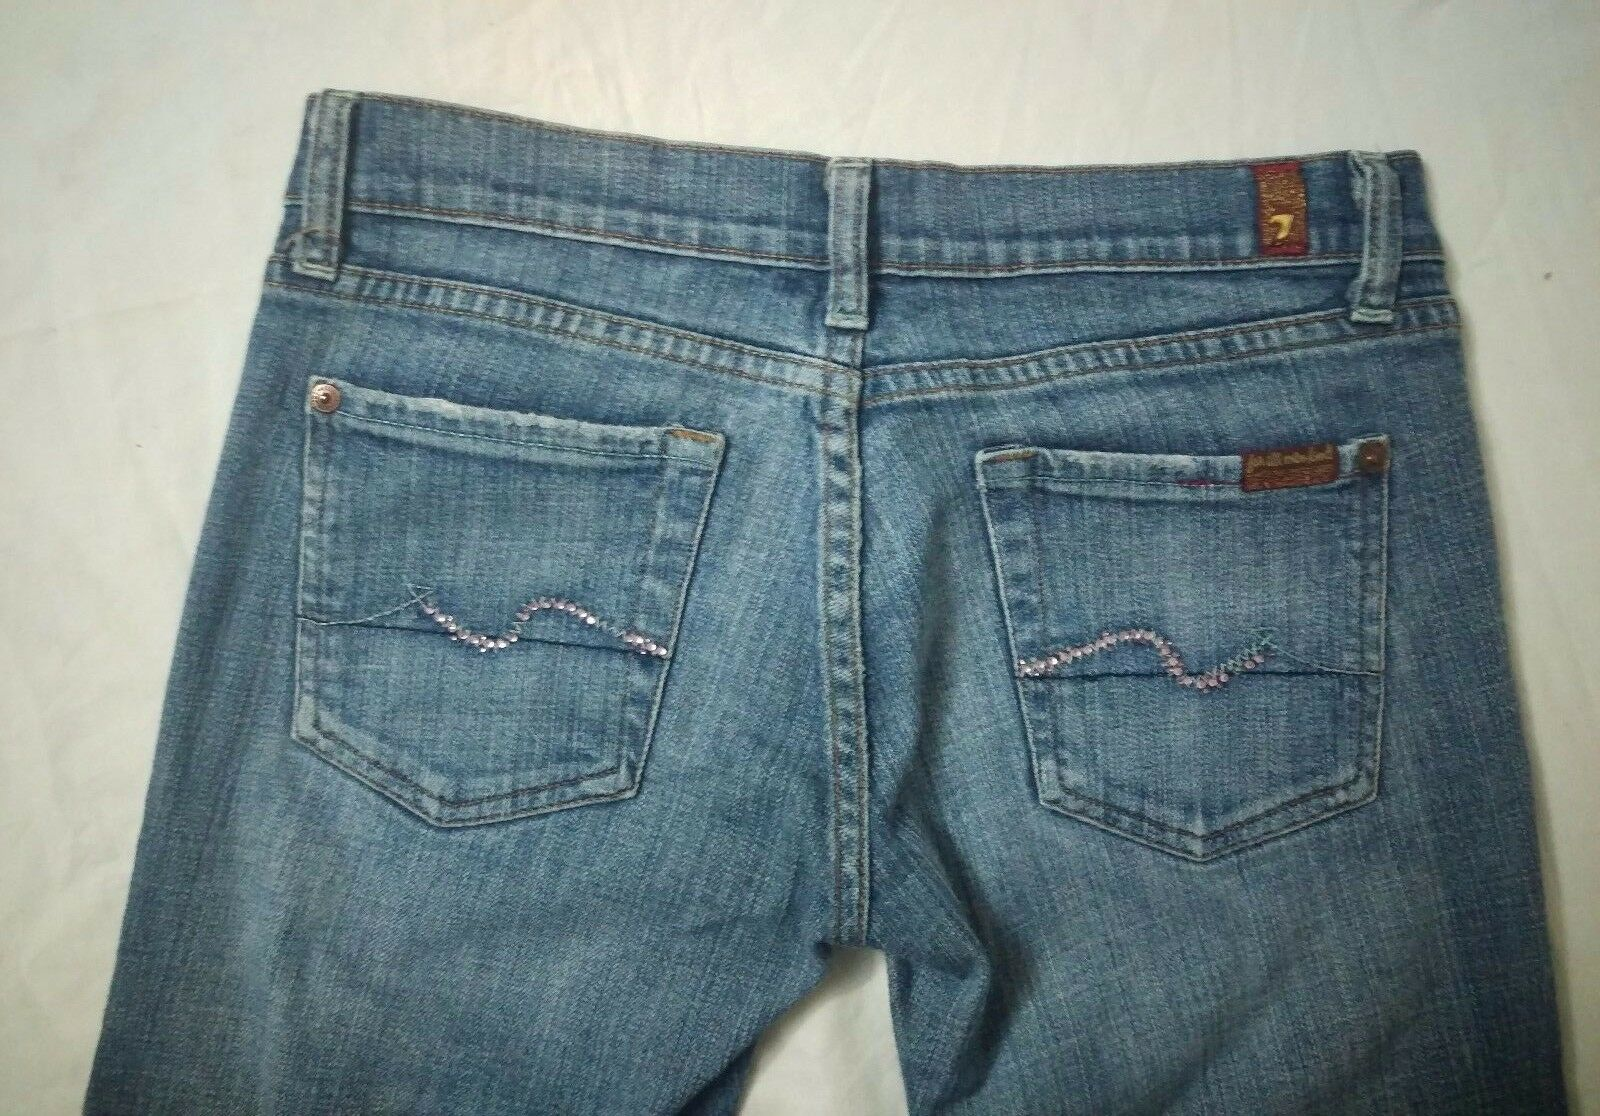 9758c3bcc563 7 for All Mankind Womens Crop Bootcut Jeans Size 27 for sale online ...